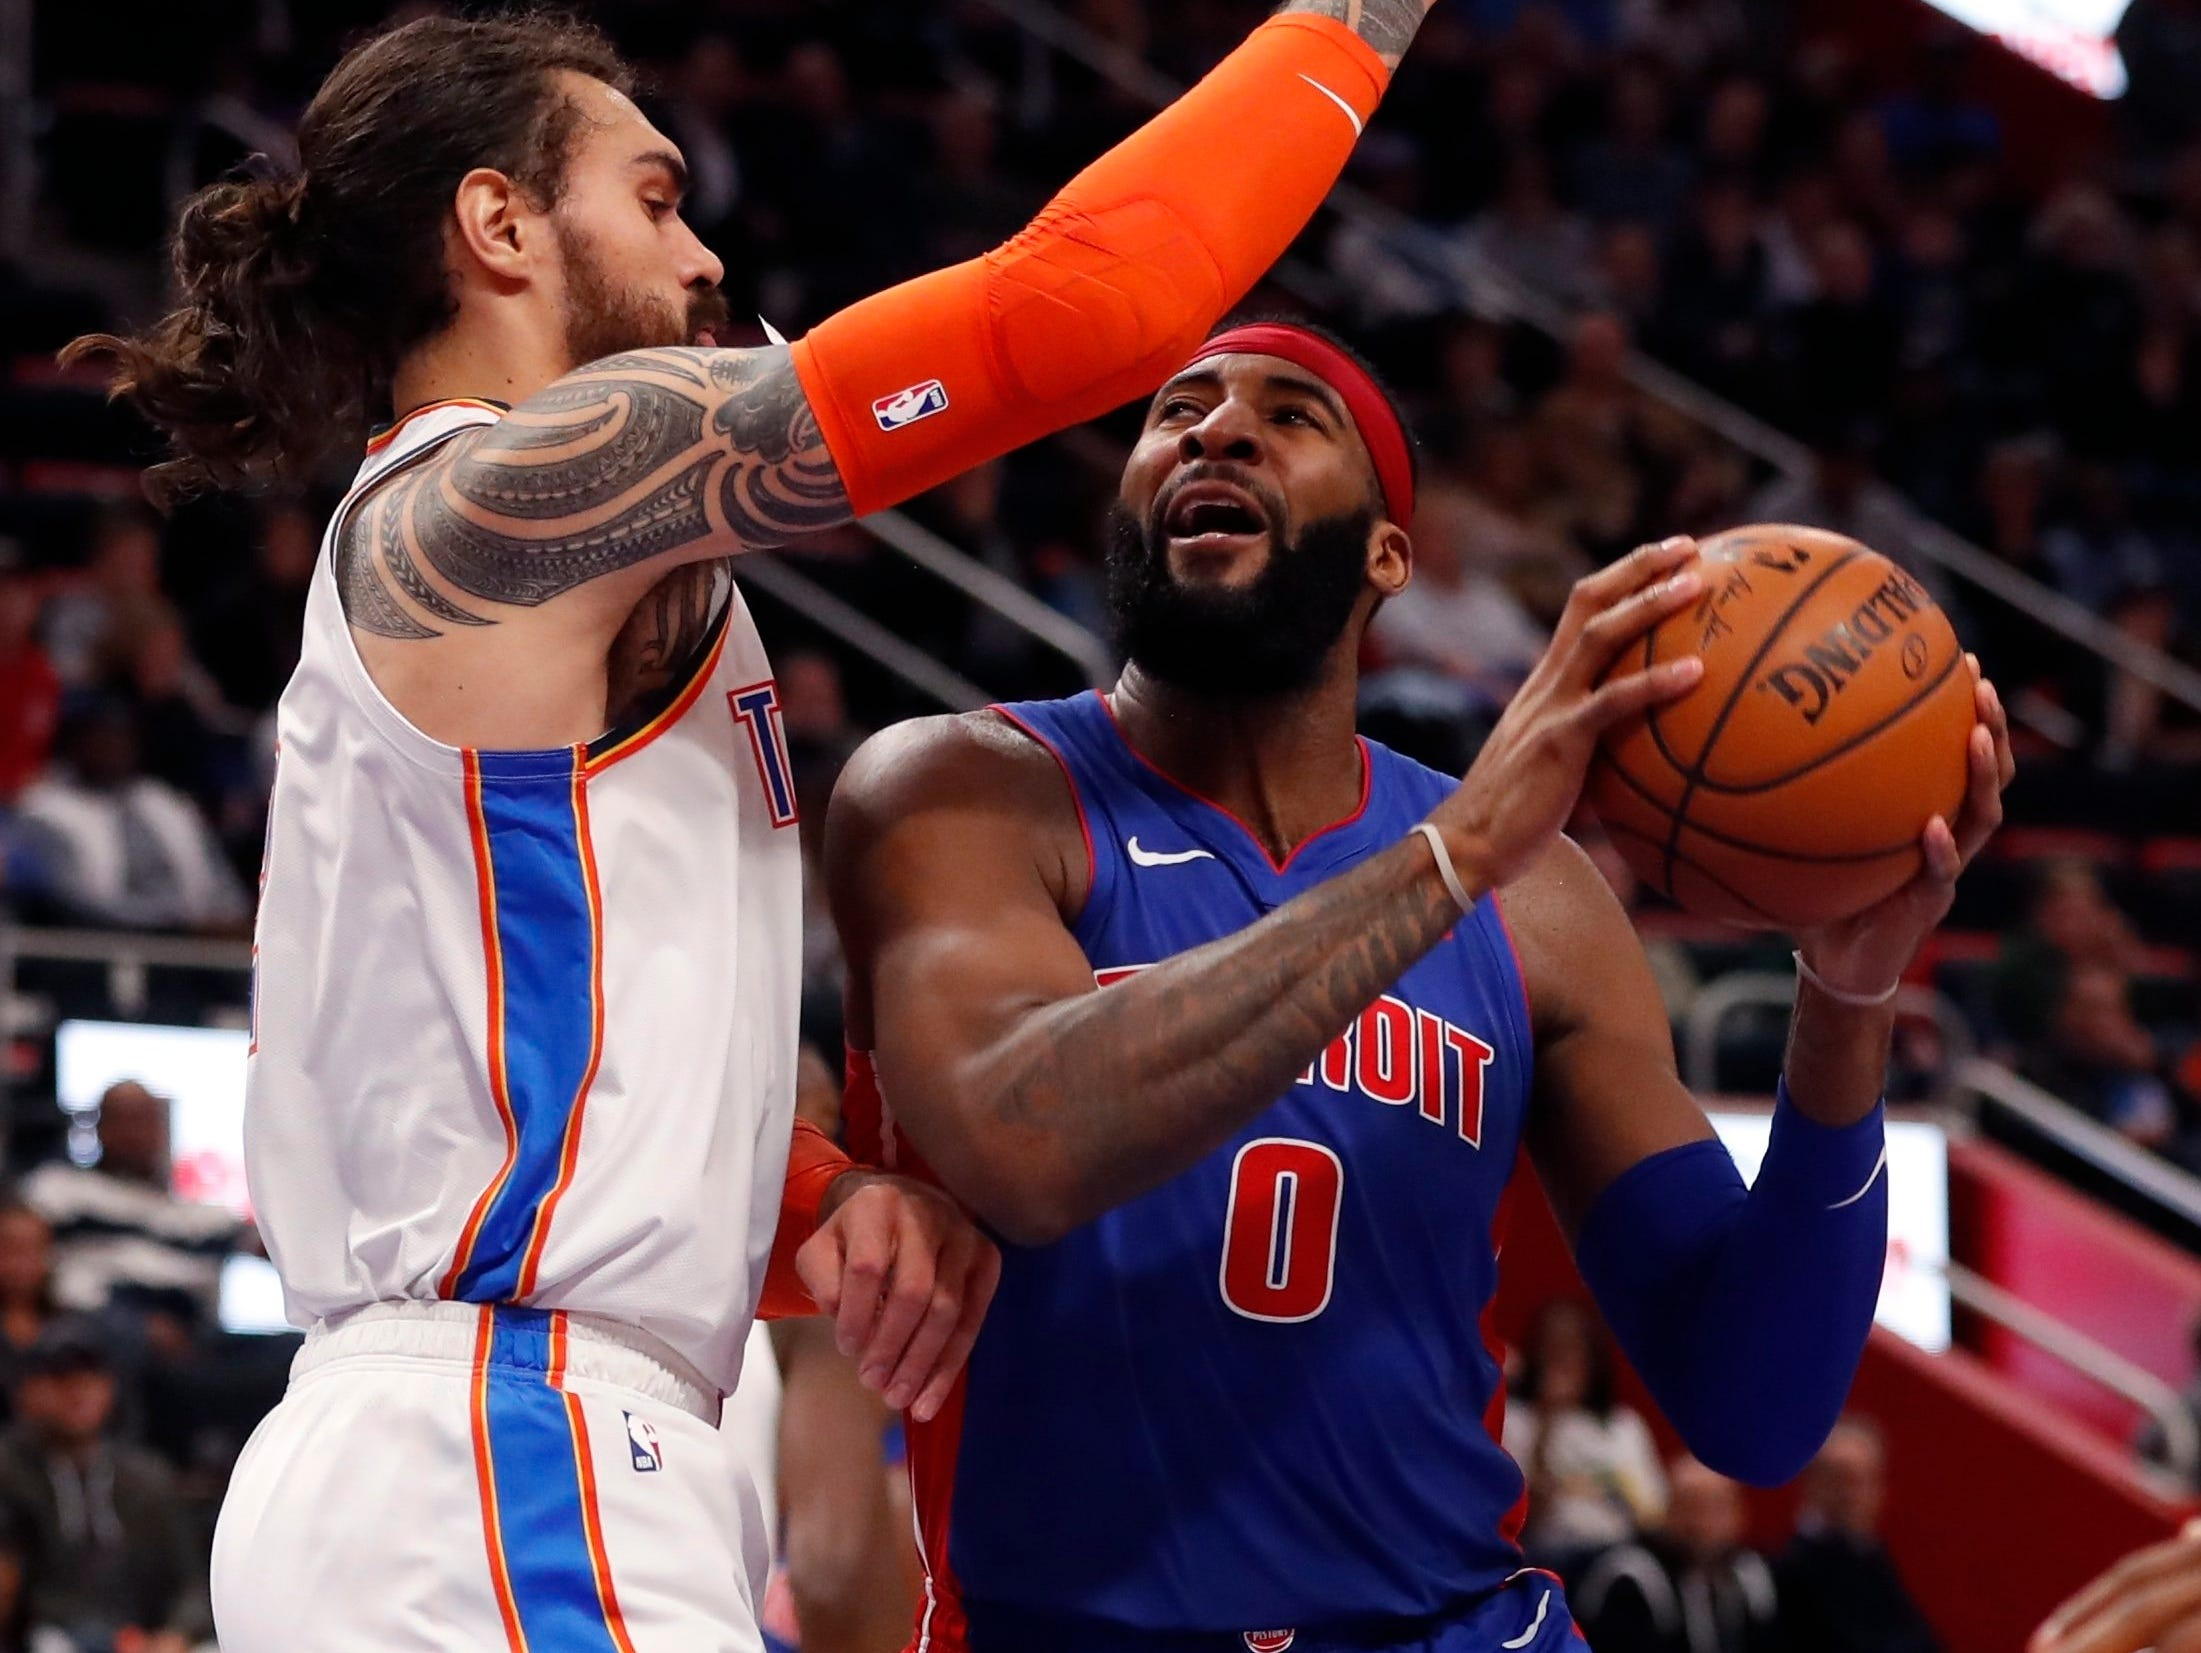 Detroit Pistons center Andre Drummond (0) is defended by Oklahoma City Thunder center Steven Adams during the first half of an NBA basketball game, Monday, Dec. 3, 2018, in Detroit.